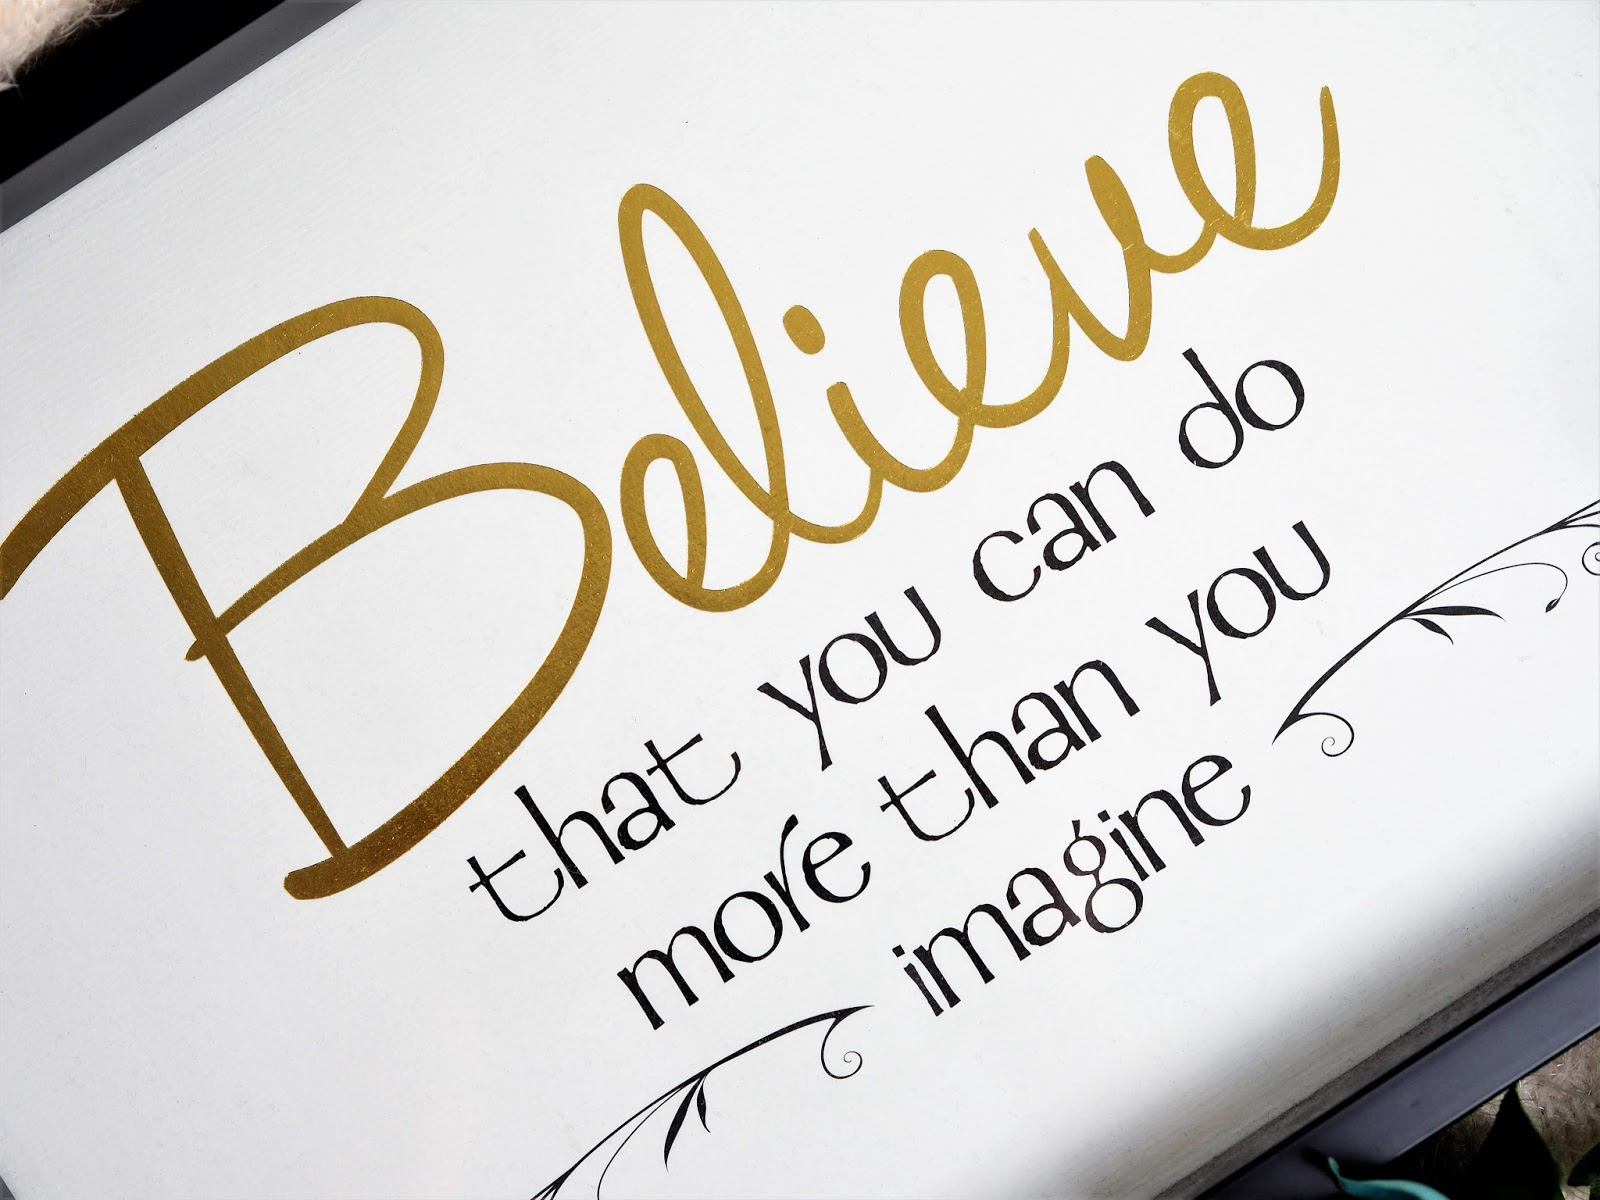 Believe you can do more than you can imagine